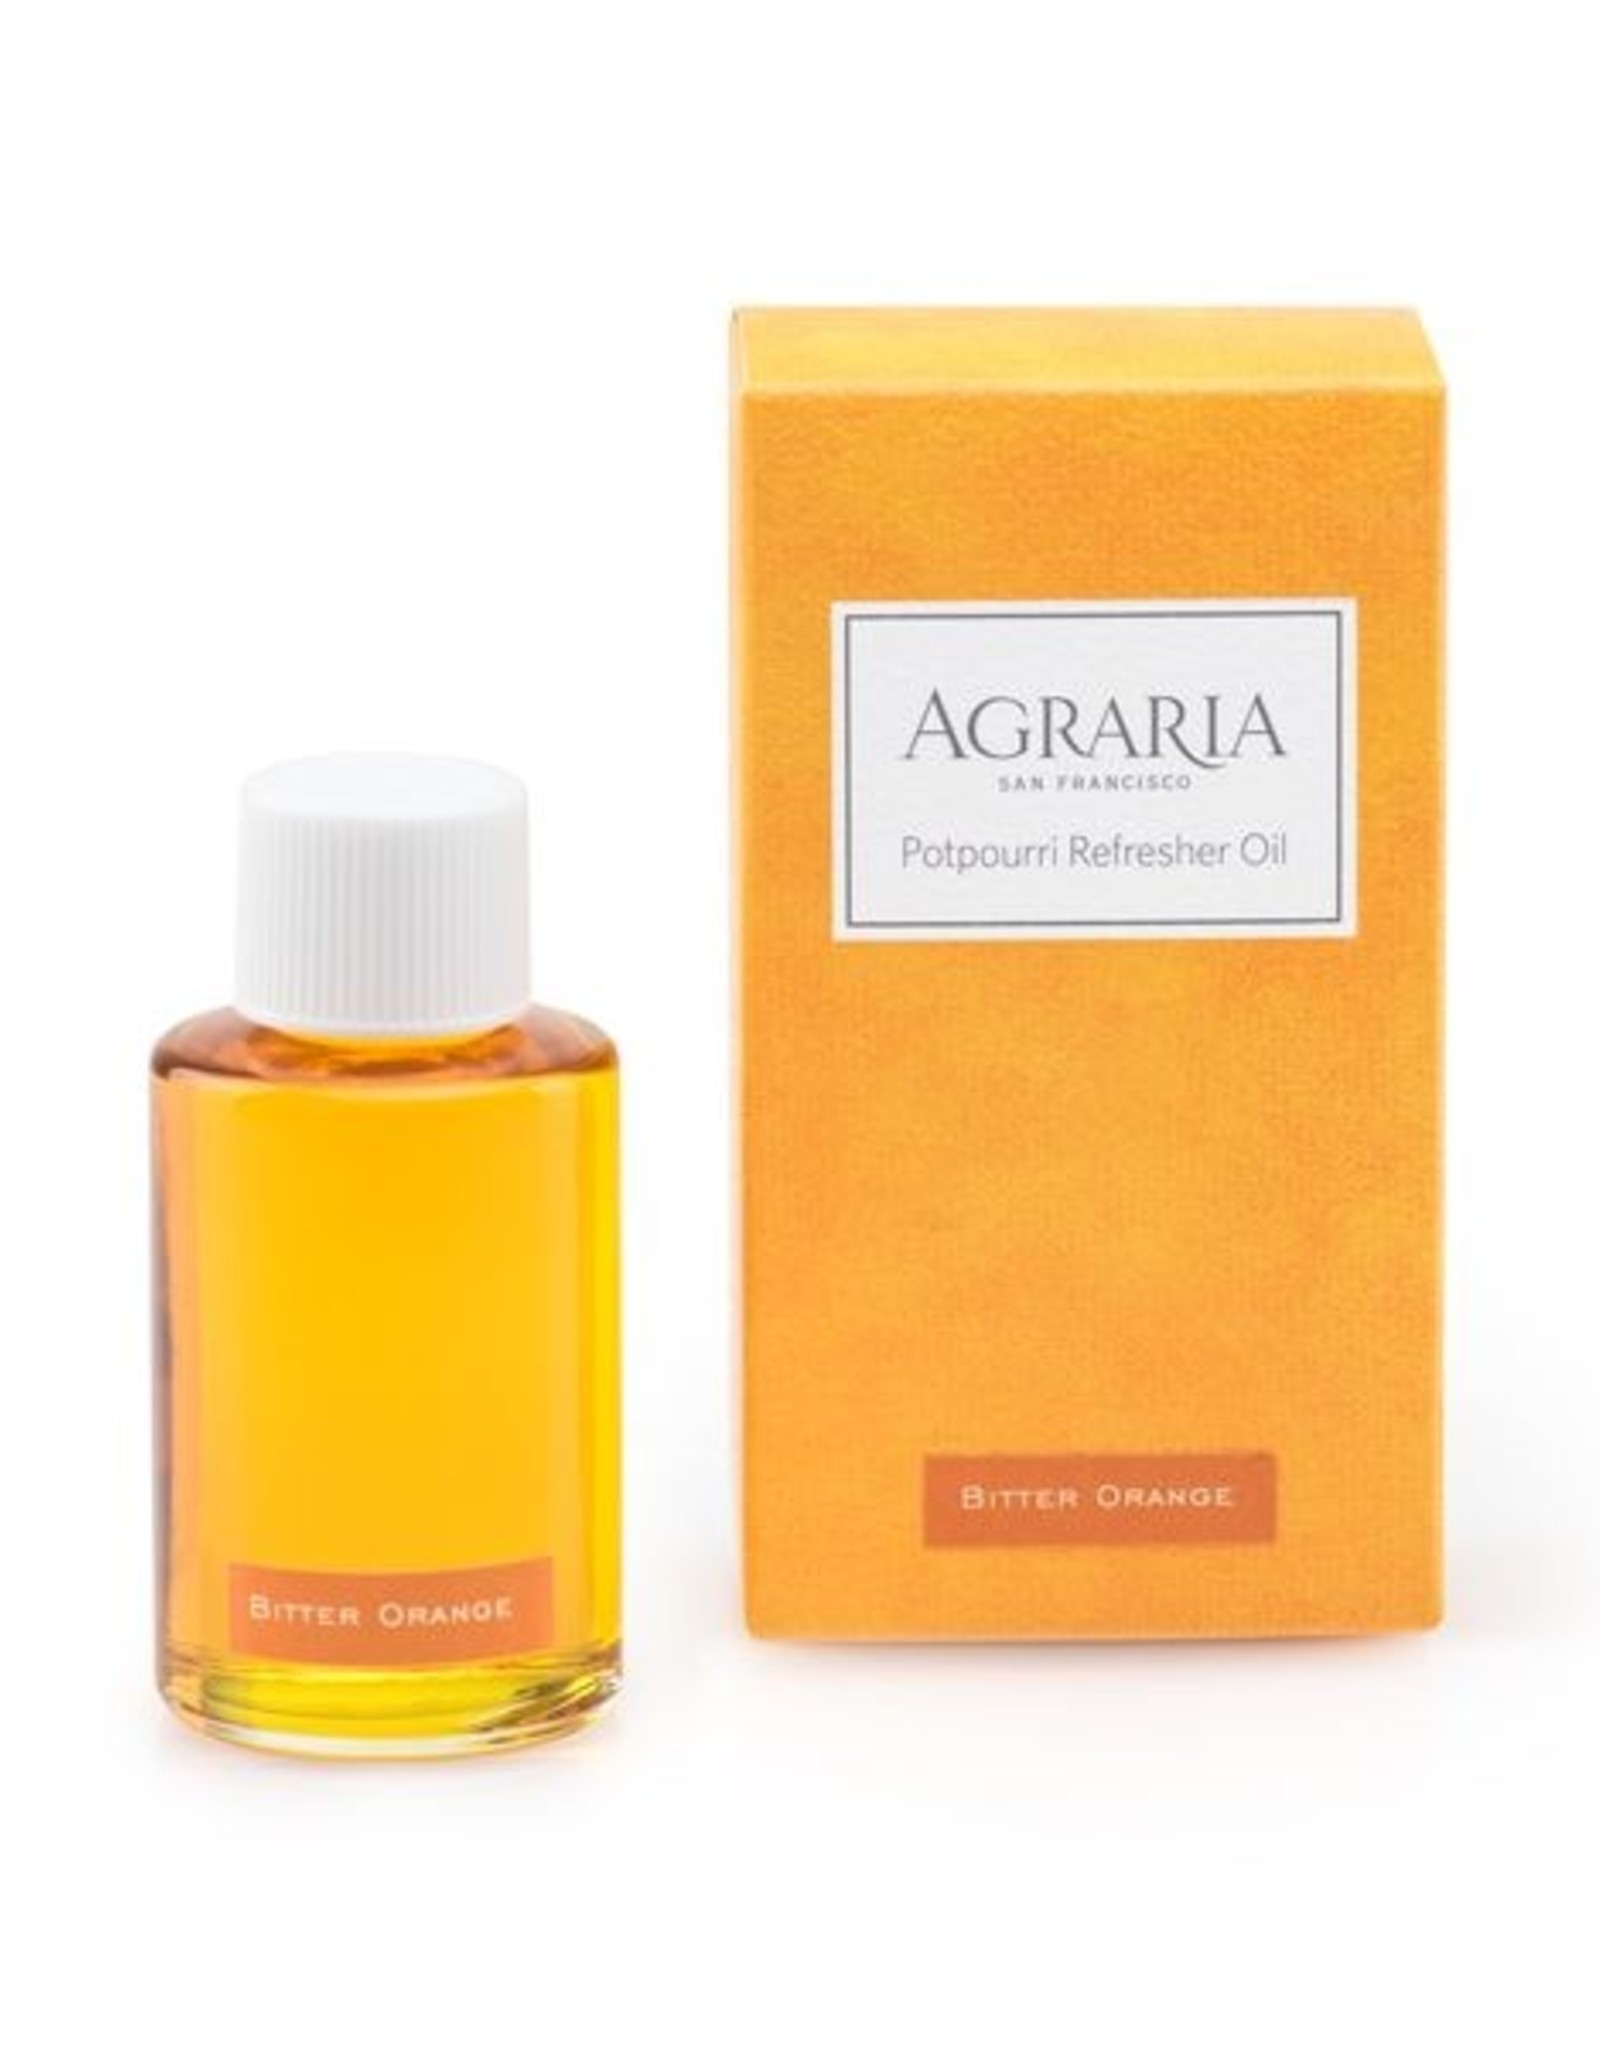 AGRARIA Bitter Orange Potpourri Oil